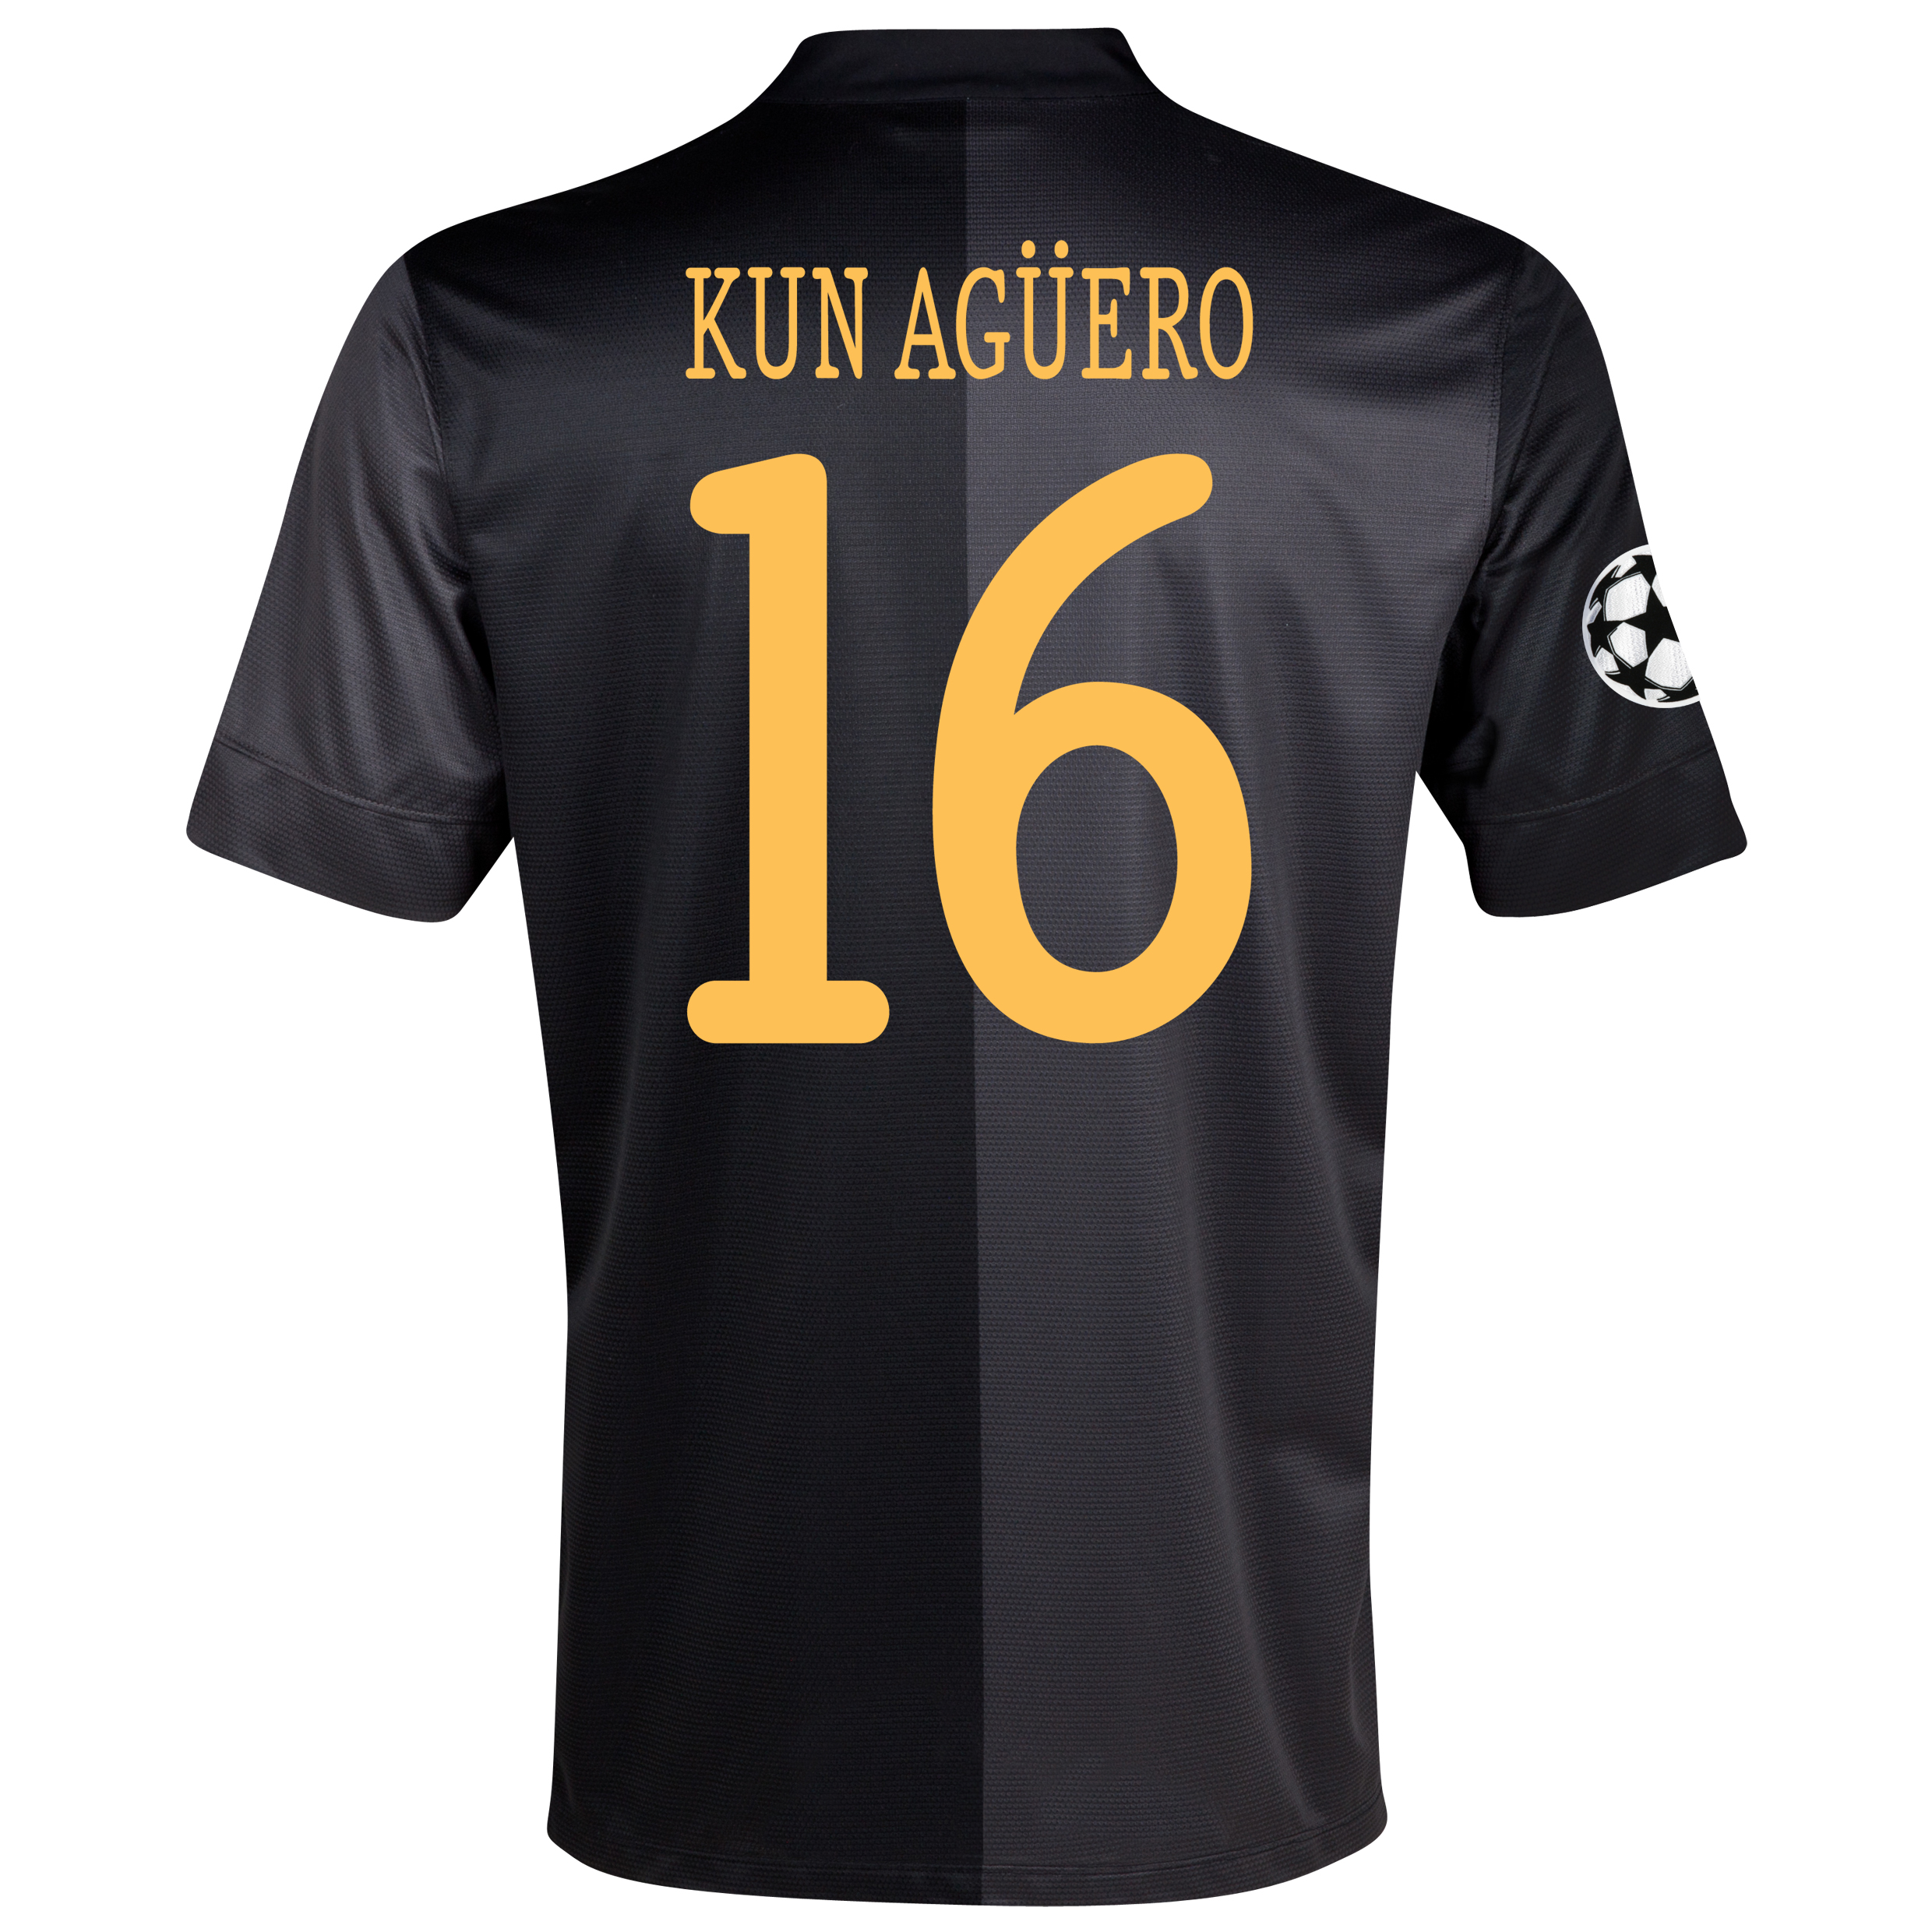 Manchester City UEFA Champions League Away Shirt 2013/14 - Junior with Kun Agüero  16 printing